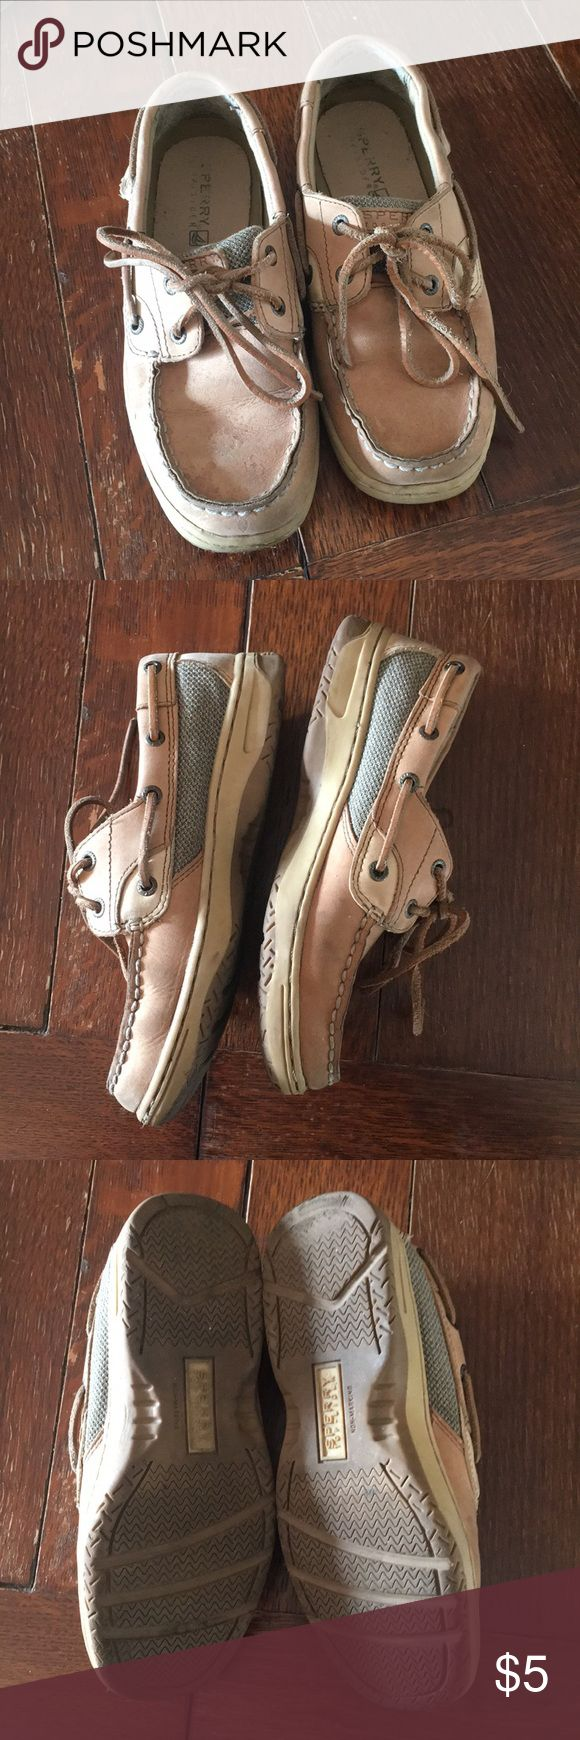 🔴SHOE SALE🔴 Sperry Unisex size 2.5 Used Sperry unisex boat shoes. Must go this week! Sperry Shoes Sneakers